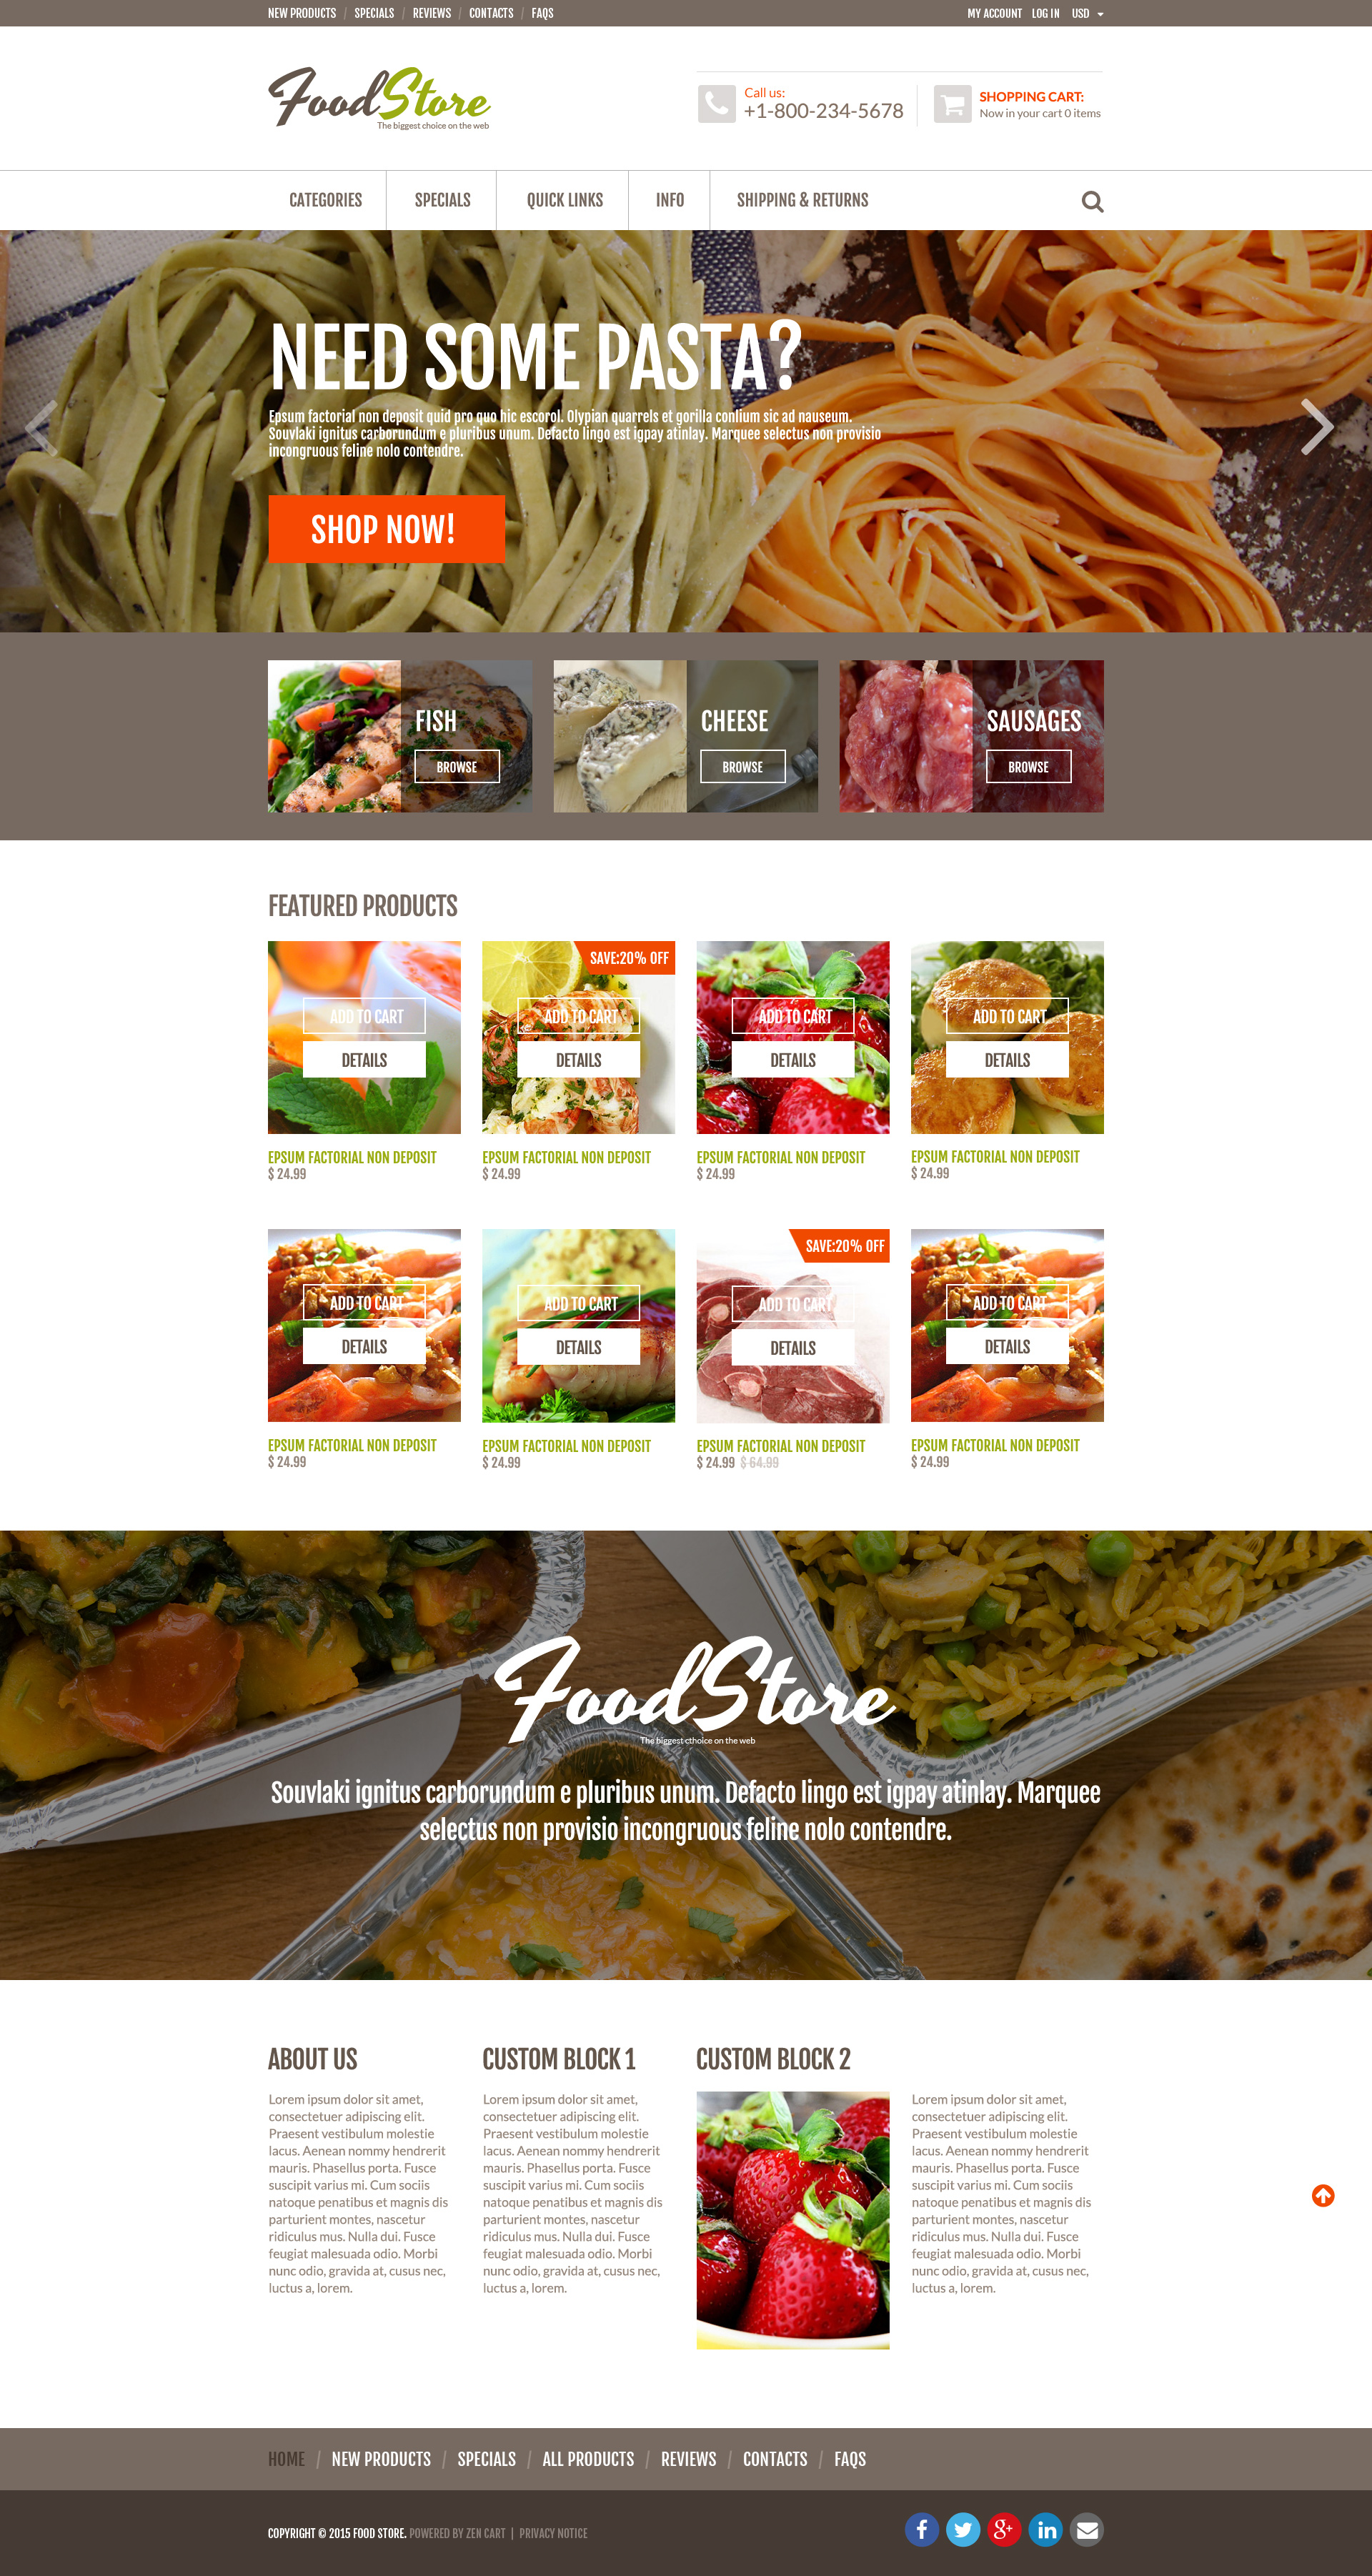 The Food Online Store Zen Cart Design 53476, one of the best ZenCart templates of its kind (food & drink, most popular), also known as food online store ZenCart template, supermarket ZenCart template, fruit ZenCart template, natural company ZenCart template, manufacturer ZenCart template, manufacture ZenCart template, production ZenCart template, fresh ZenCart template, beverage ZenCart template, PSD template ZenCart template, wine ZenCart template, production ZenCart template, cake ZenCart template, cakes ZenCart template, food ZenCart template, feast ZenCart template, tasty ZenCart template, delicious ZenCart template, gourmet ZenCart template, vegetables ZenCart template, fruits and related with food online store, supermarket, fruit, natural company, manufacturer, manufacture, production, fresh, beverage, PSD template, wine, production, cake, cakes, food, feast, tasty, delicious, gourmet, vegetables, fruits, etc.